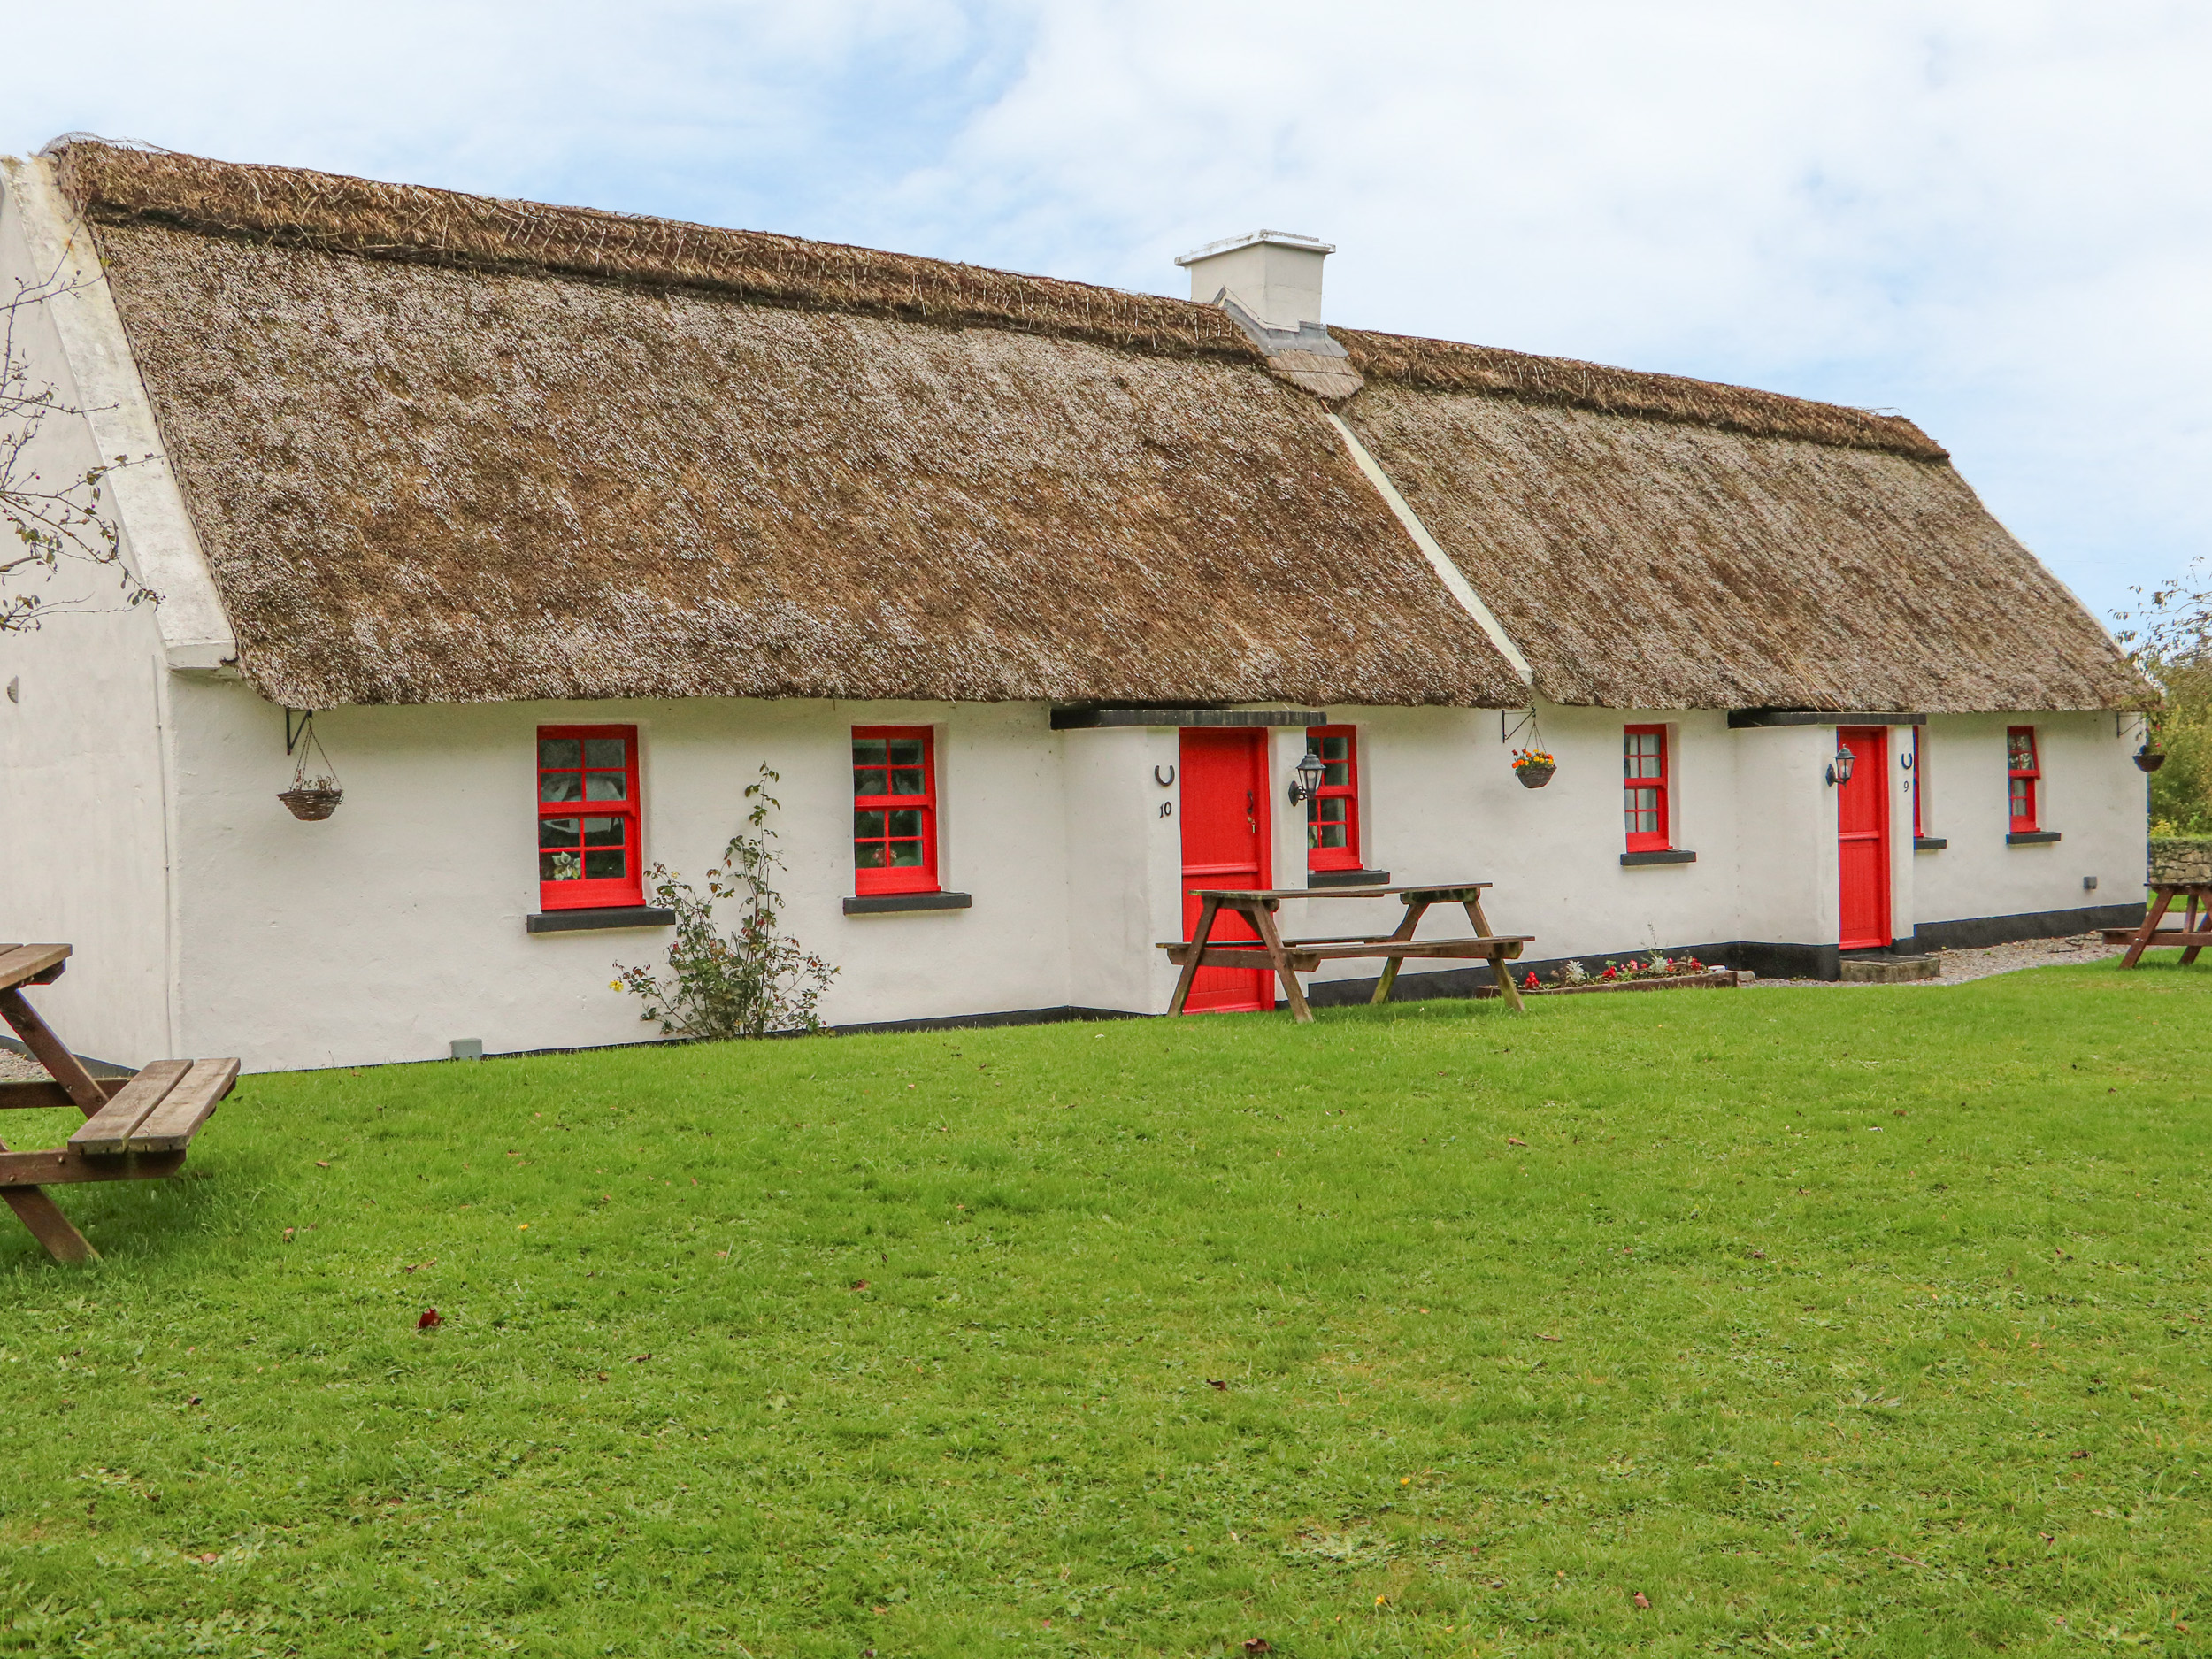 No. 10 Lough Derg Thatched Cottage, County Tipperary